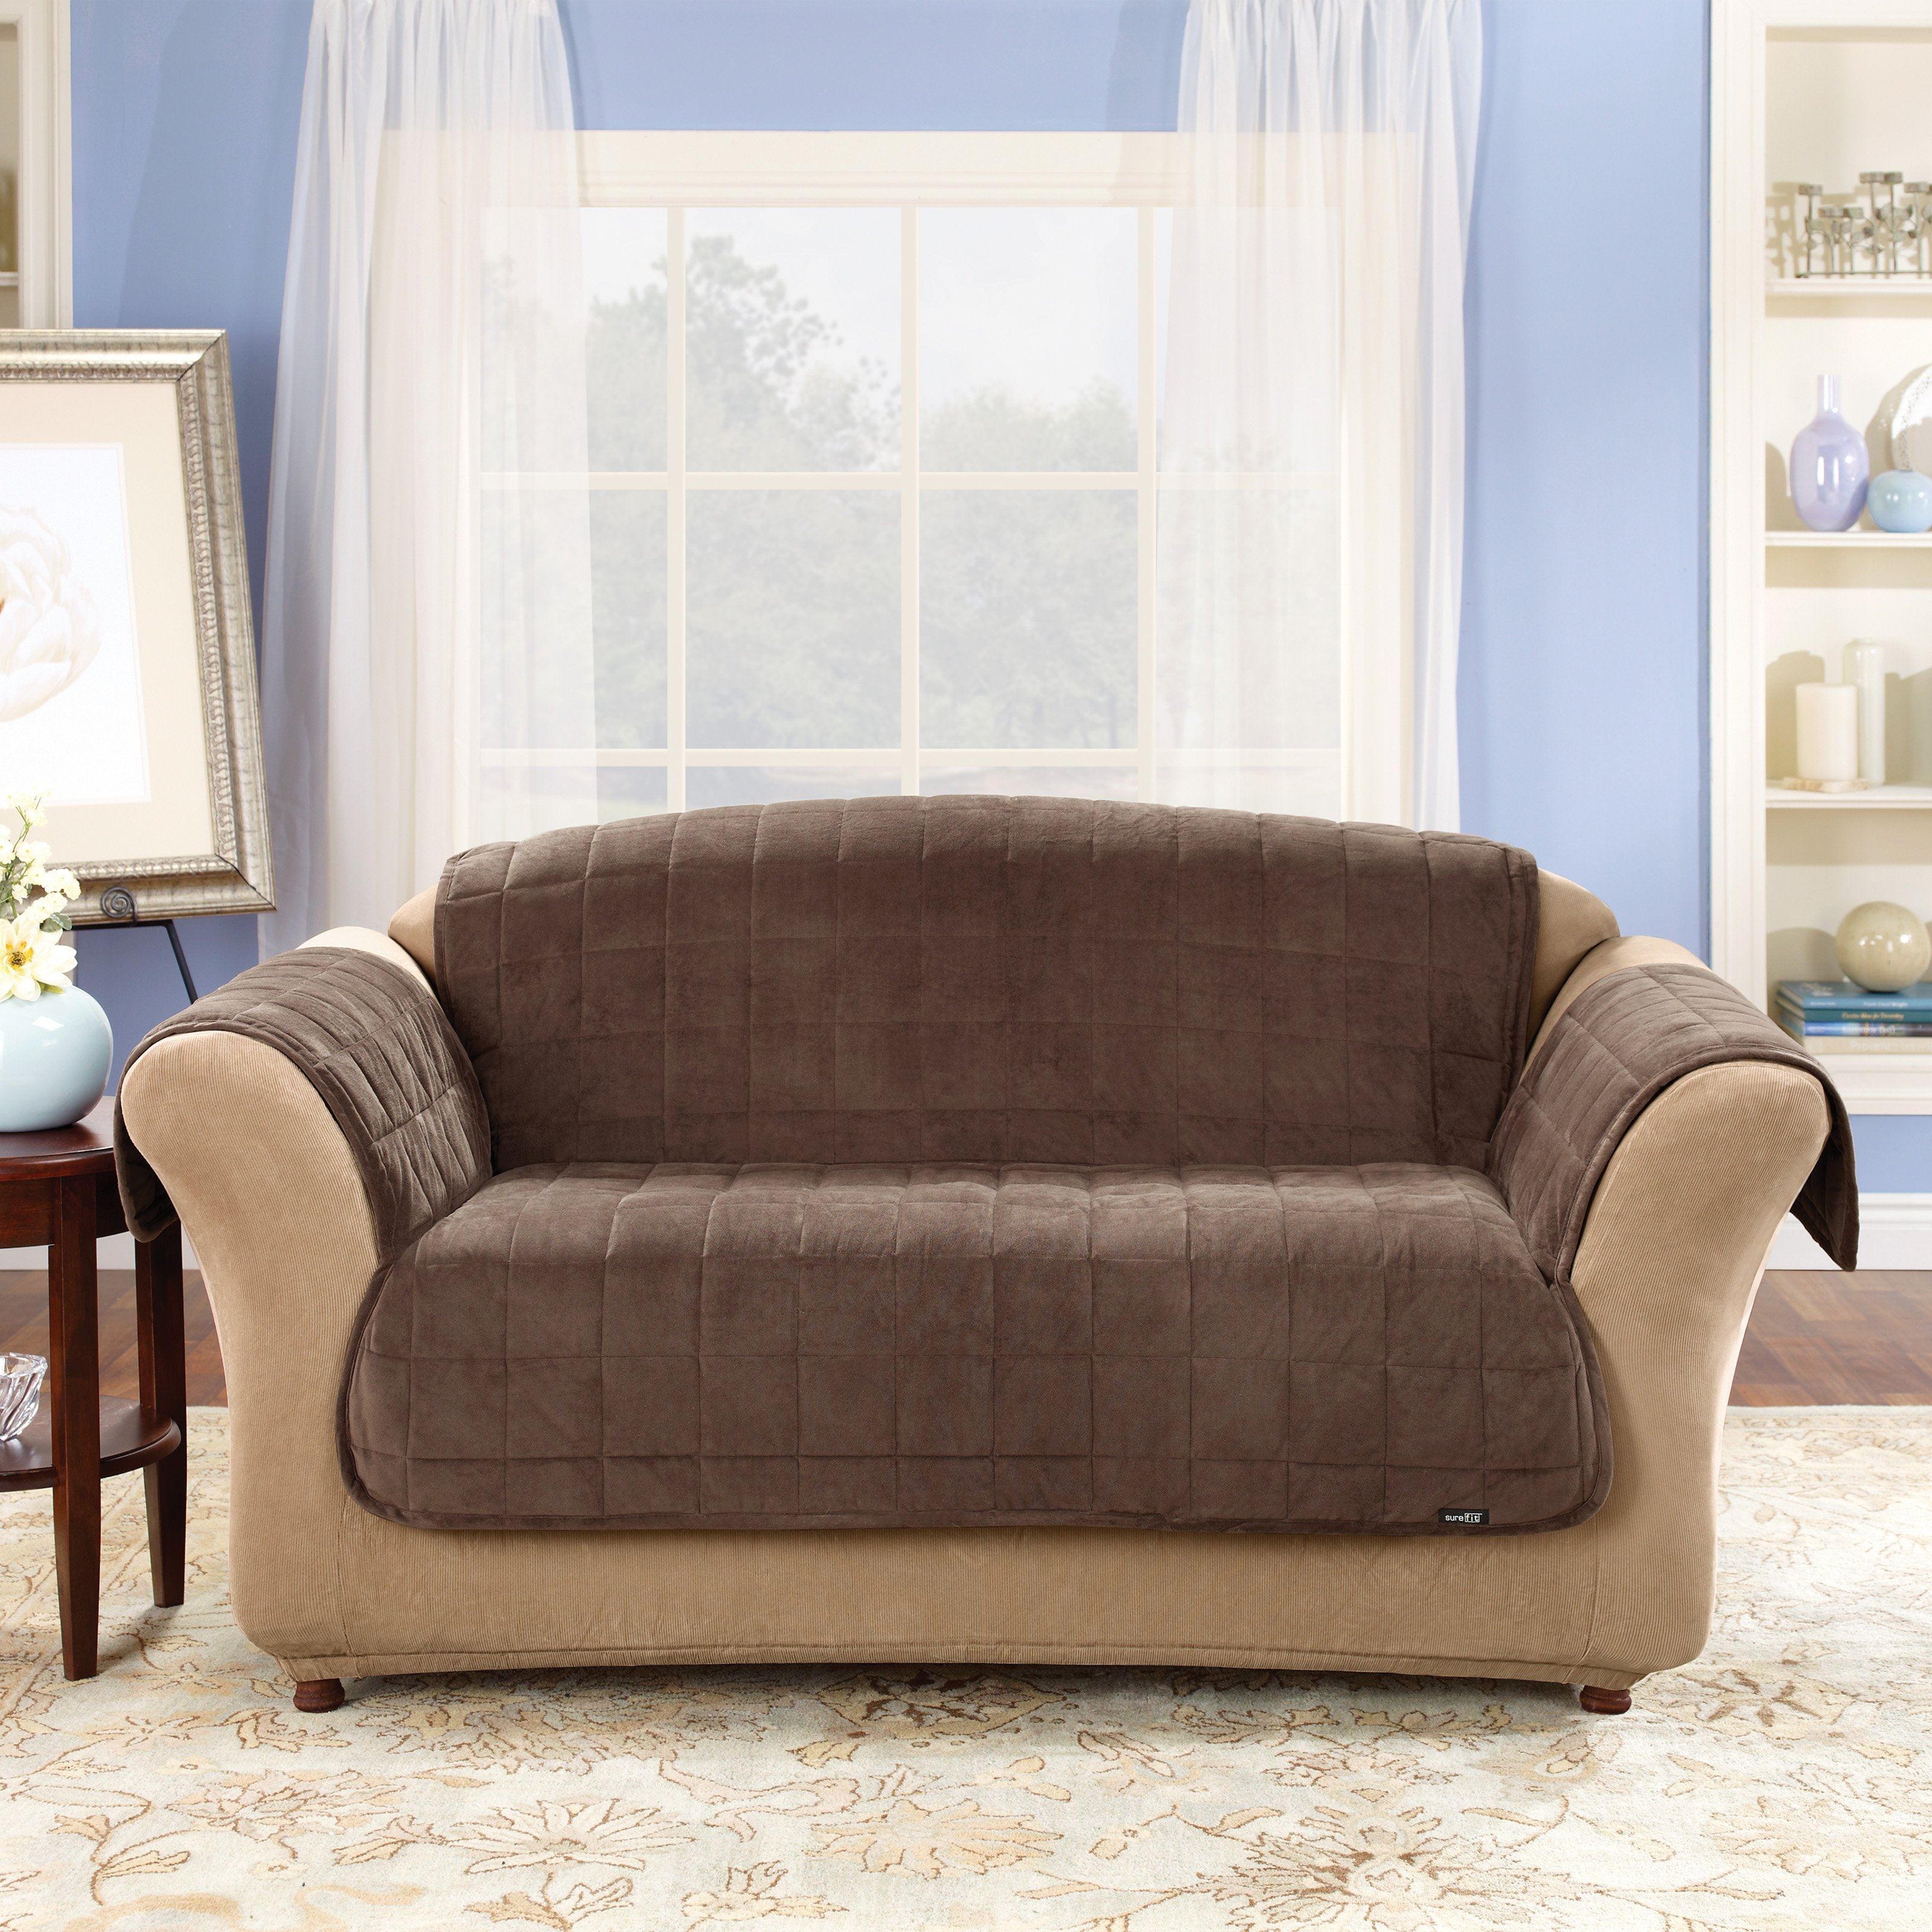 Living Room Appealing Couch Covers Target For Living Room Decor Throughout Sofa And Chair Covers (Image 6 of 15)